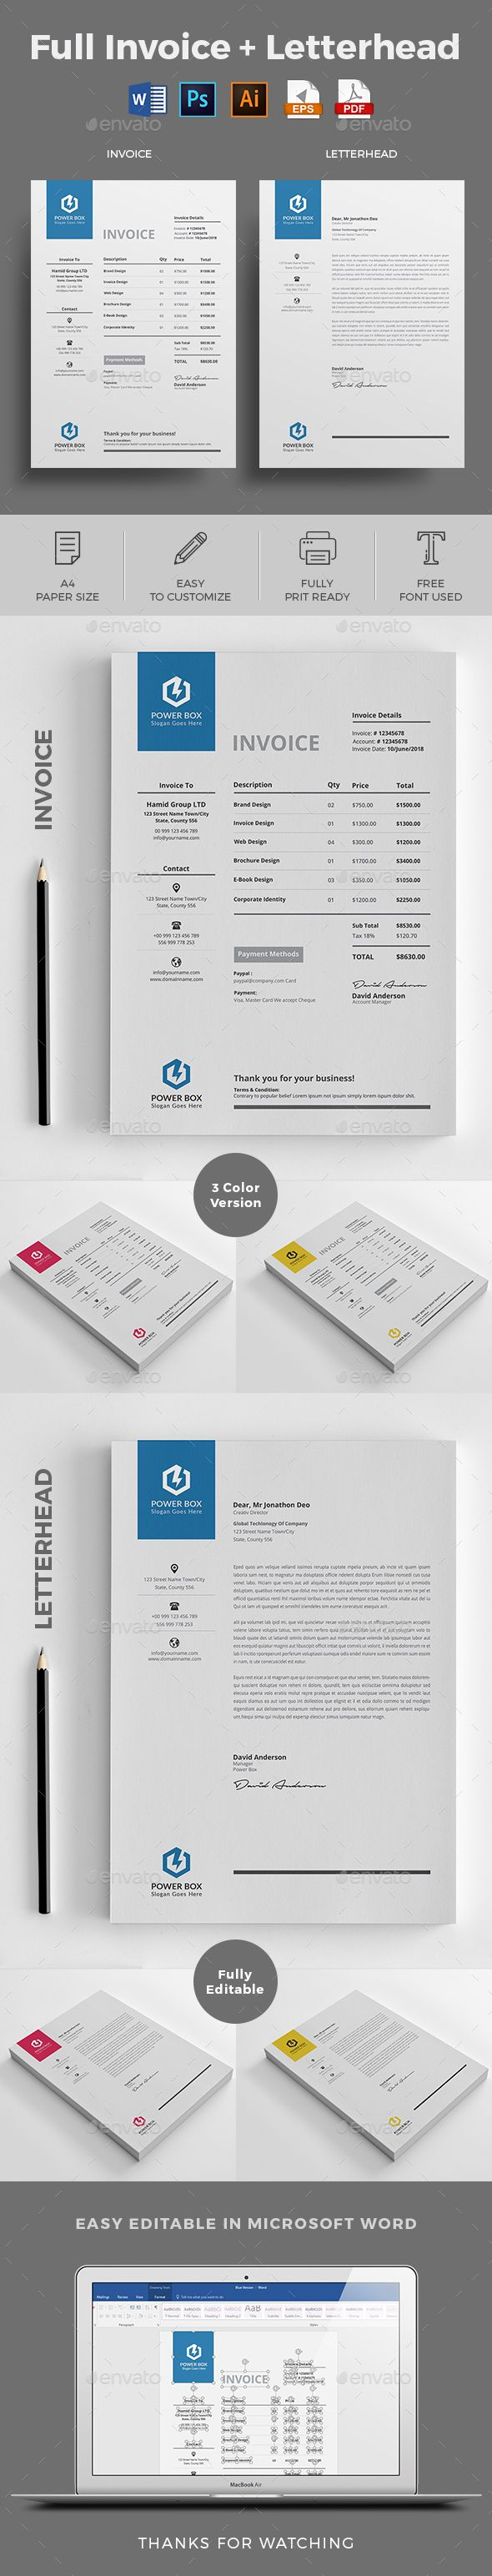 Invoice Generator Pdf Best 75 Invoice Templates Images On Pinterest  Invoice Design .